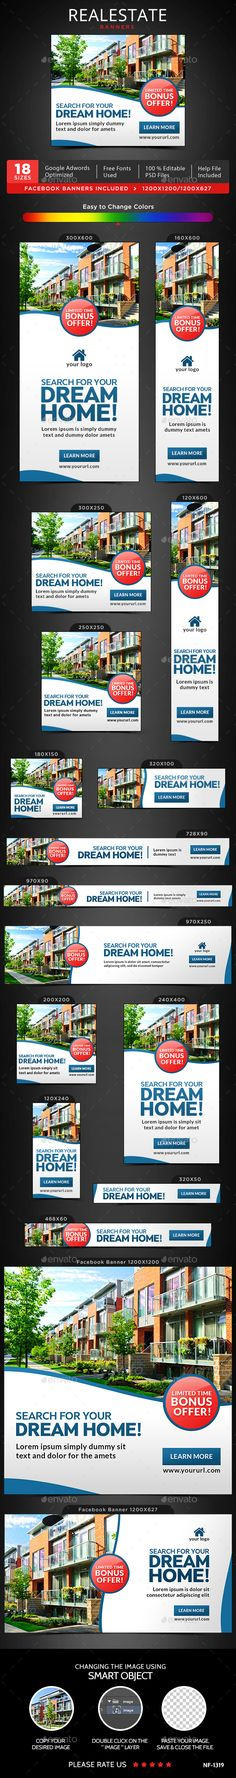 Realestate Banners Template PSD. Download here: http://graphicriver.net/item/realestate-banners/16415059?ref=ksioks